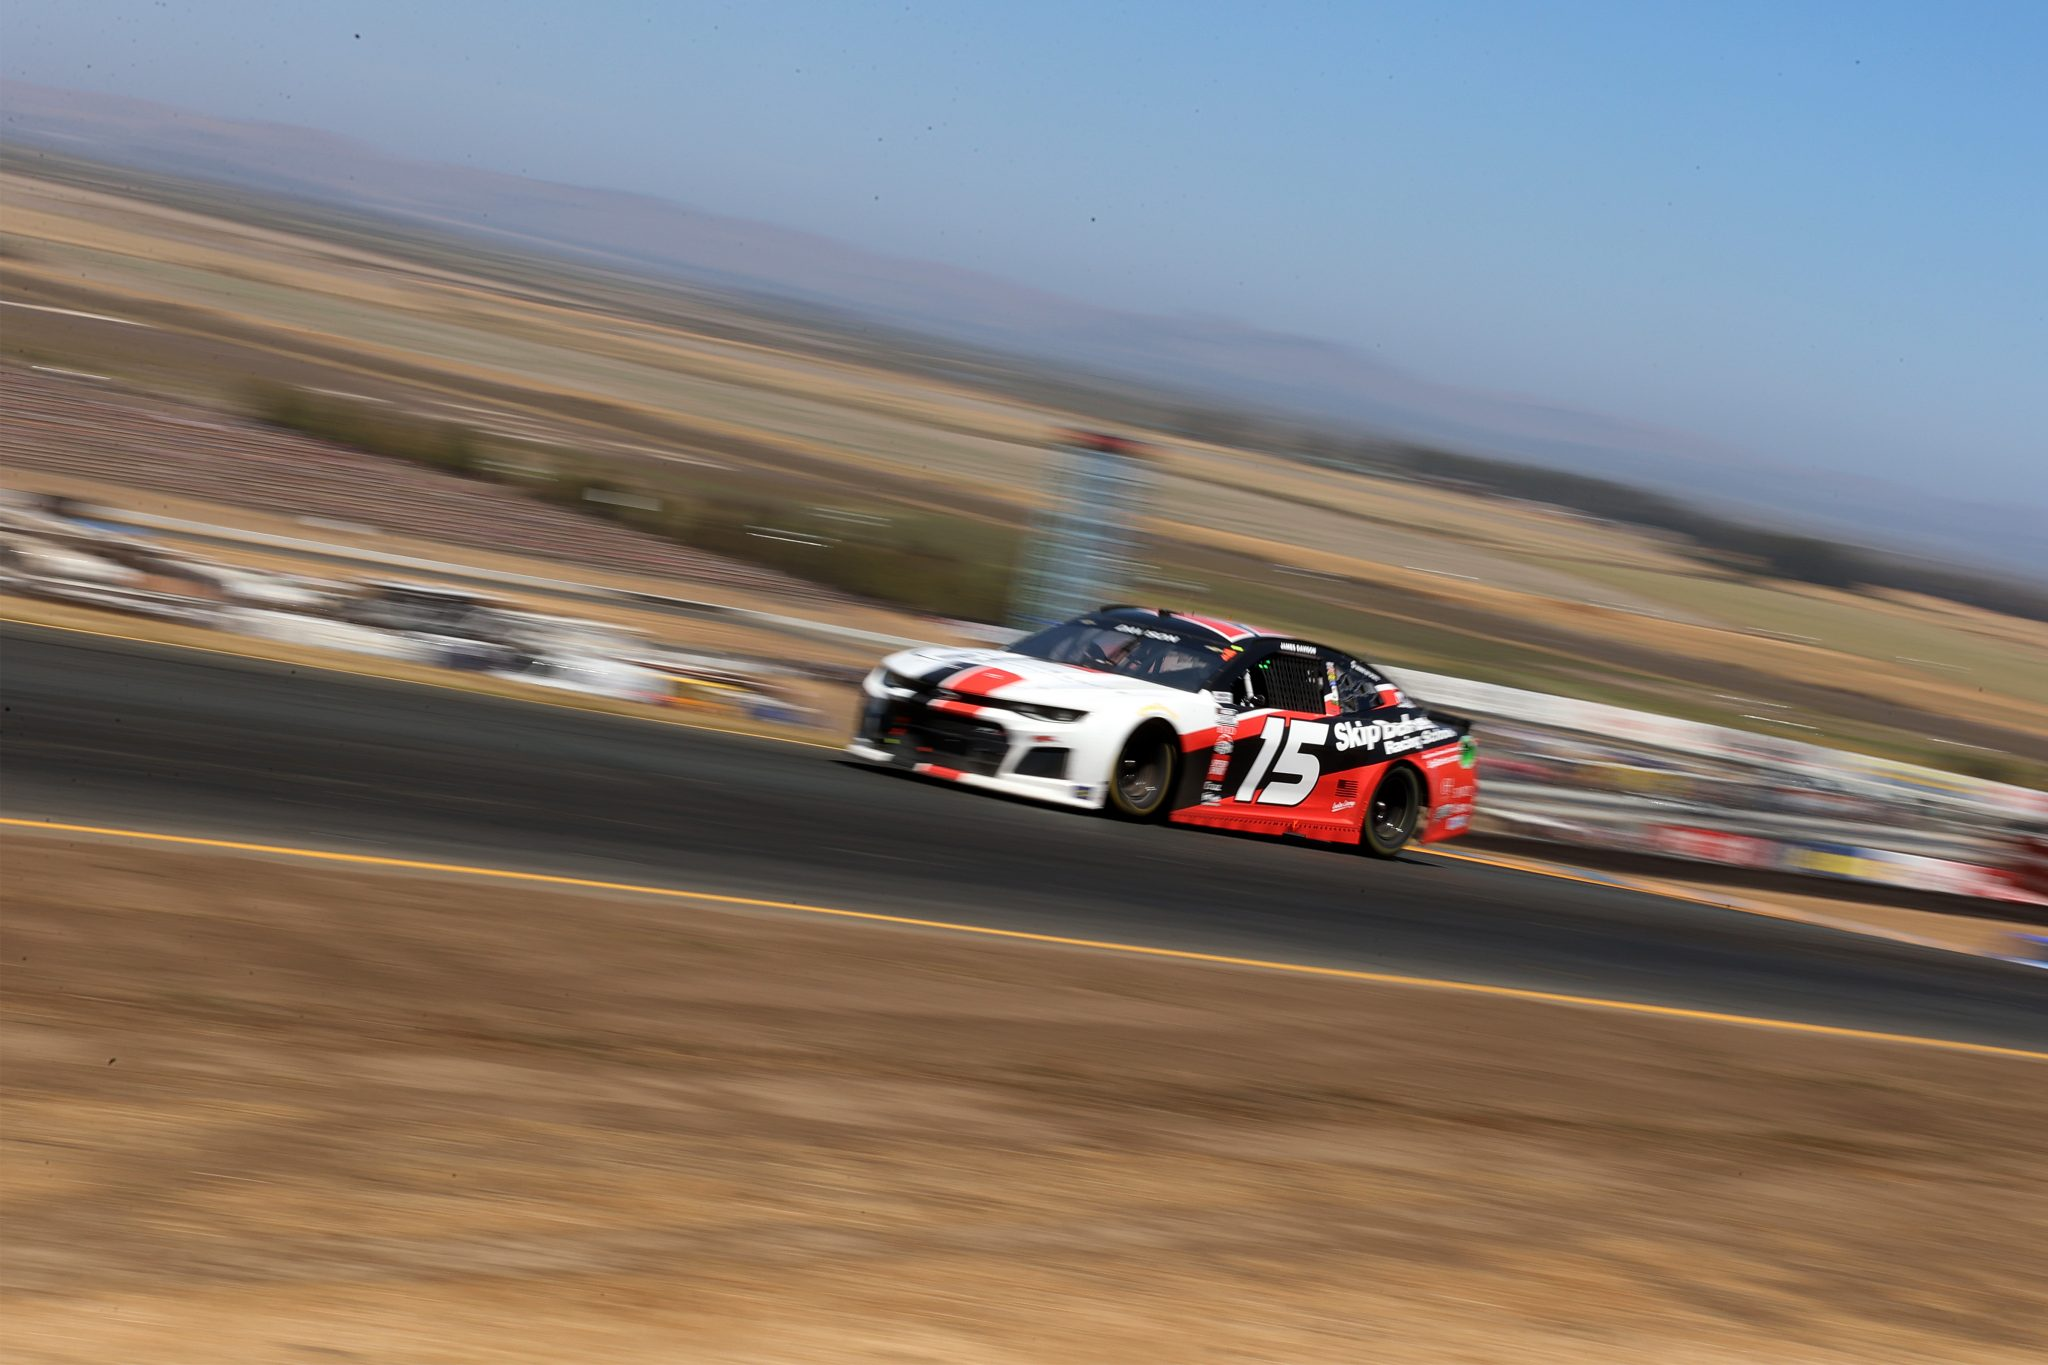 SONOMA, CALIFORNIA - JUNE 06: James Davison, driver of the #15 Clubhouse Media Group Chevrolet, drives during the NASCAR Cup Series Toyota/Save Mart 350 at Sonoma Raceway on June 06, 2021 in Sonoma, California. (Photo by Carmen Mandato/Getty Images) | Getty Images